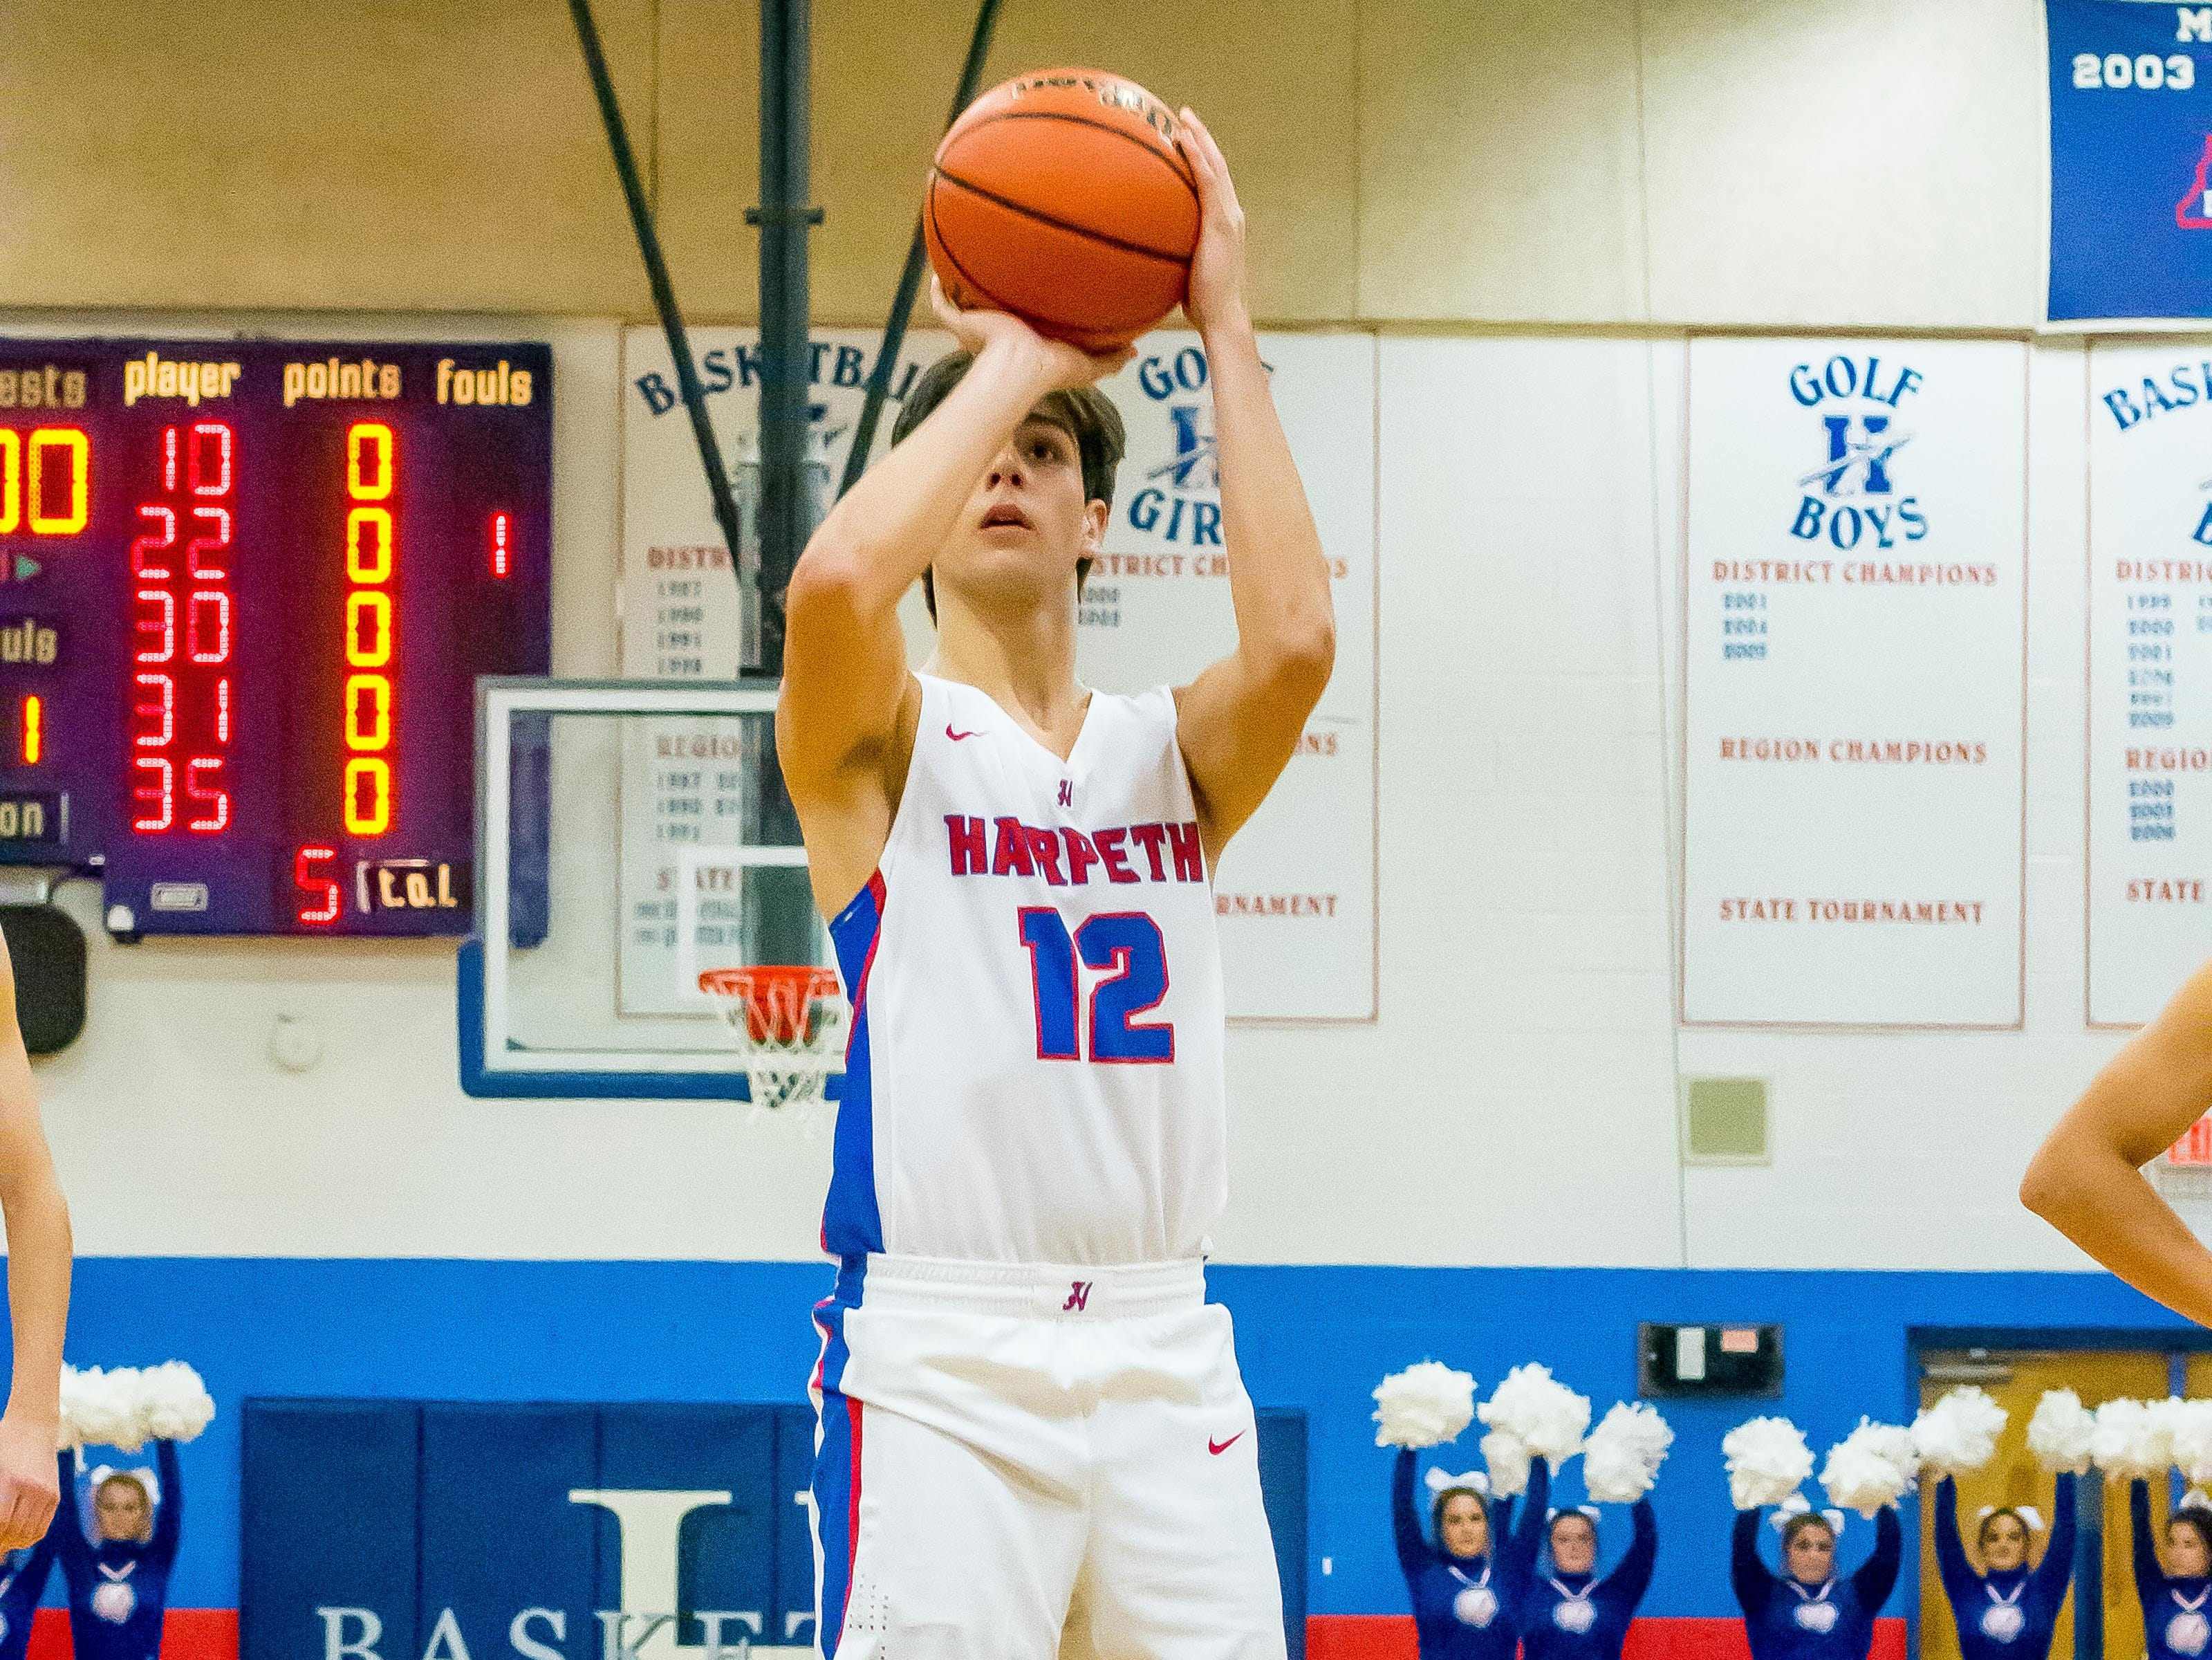 Harpeth's Grayson Maddox scored six points against Father Ryan.